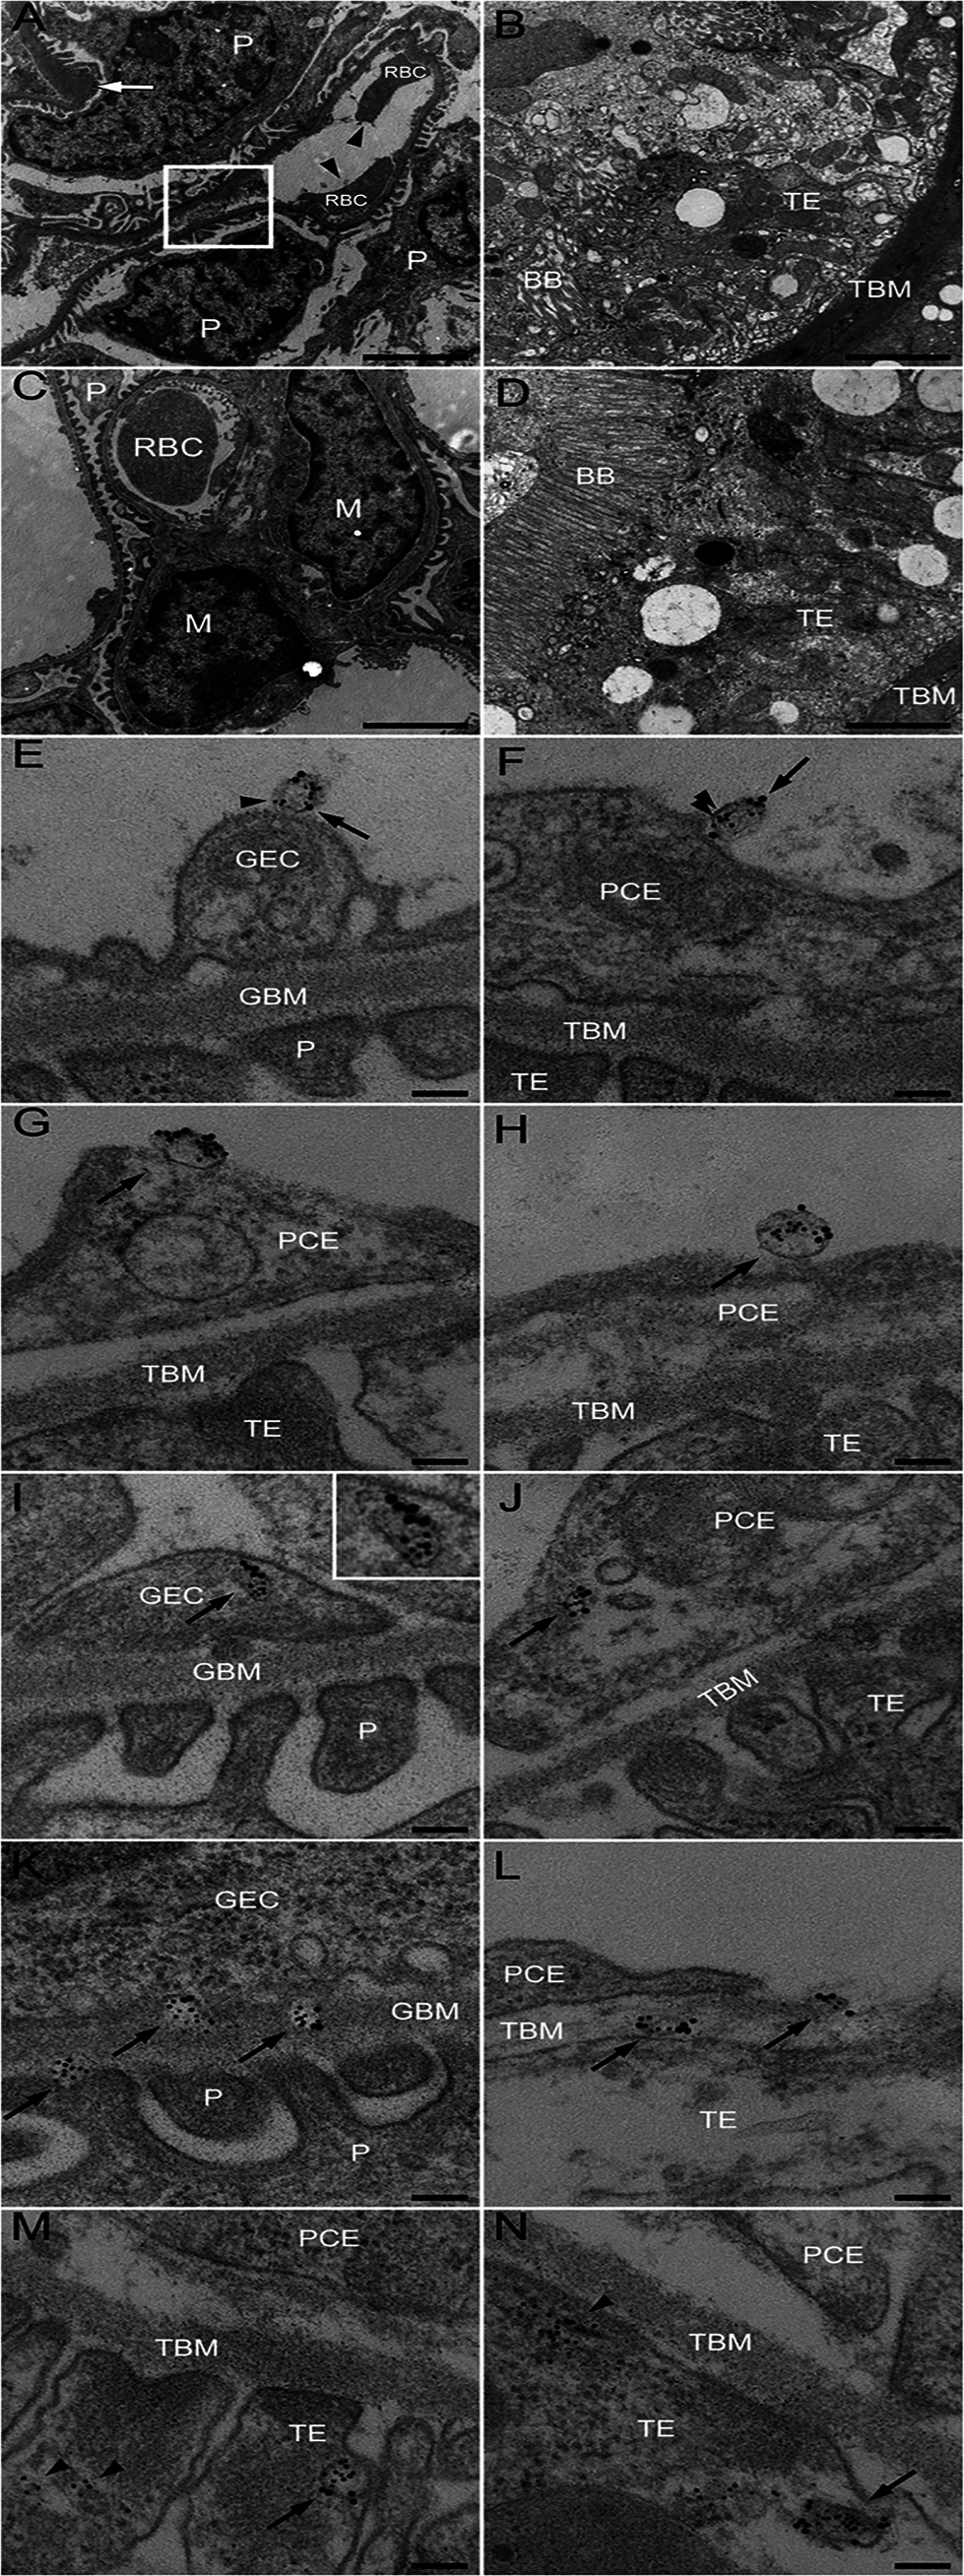 Ultramorphology of the renal cortex in mice infected with <i>E. coli</i> O157:H7.